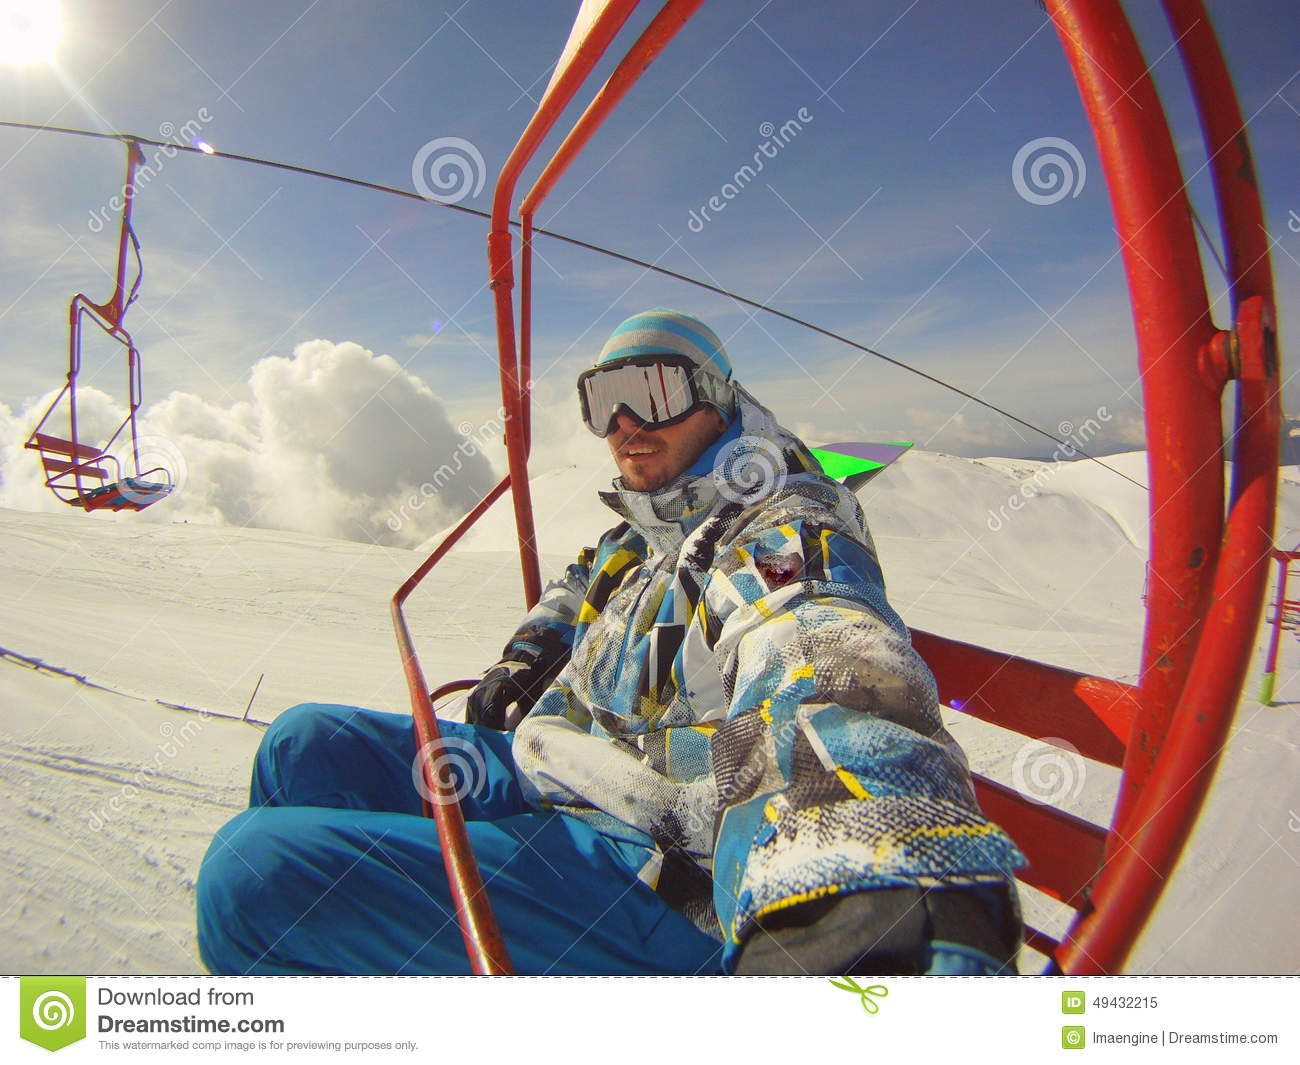 Winter sports - skier using cable car